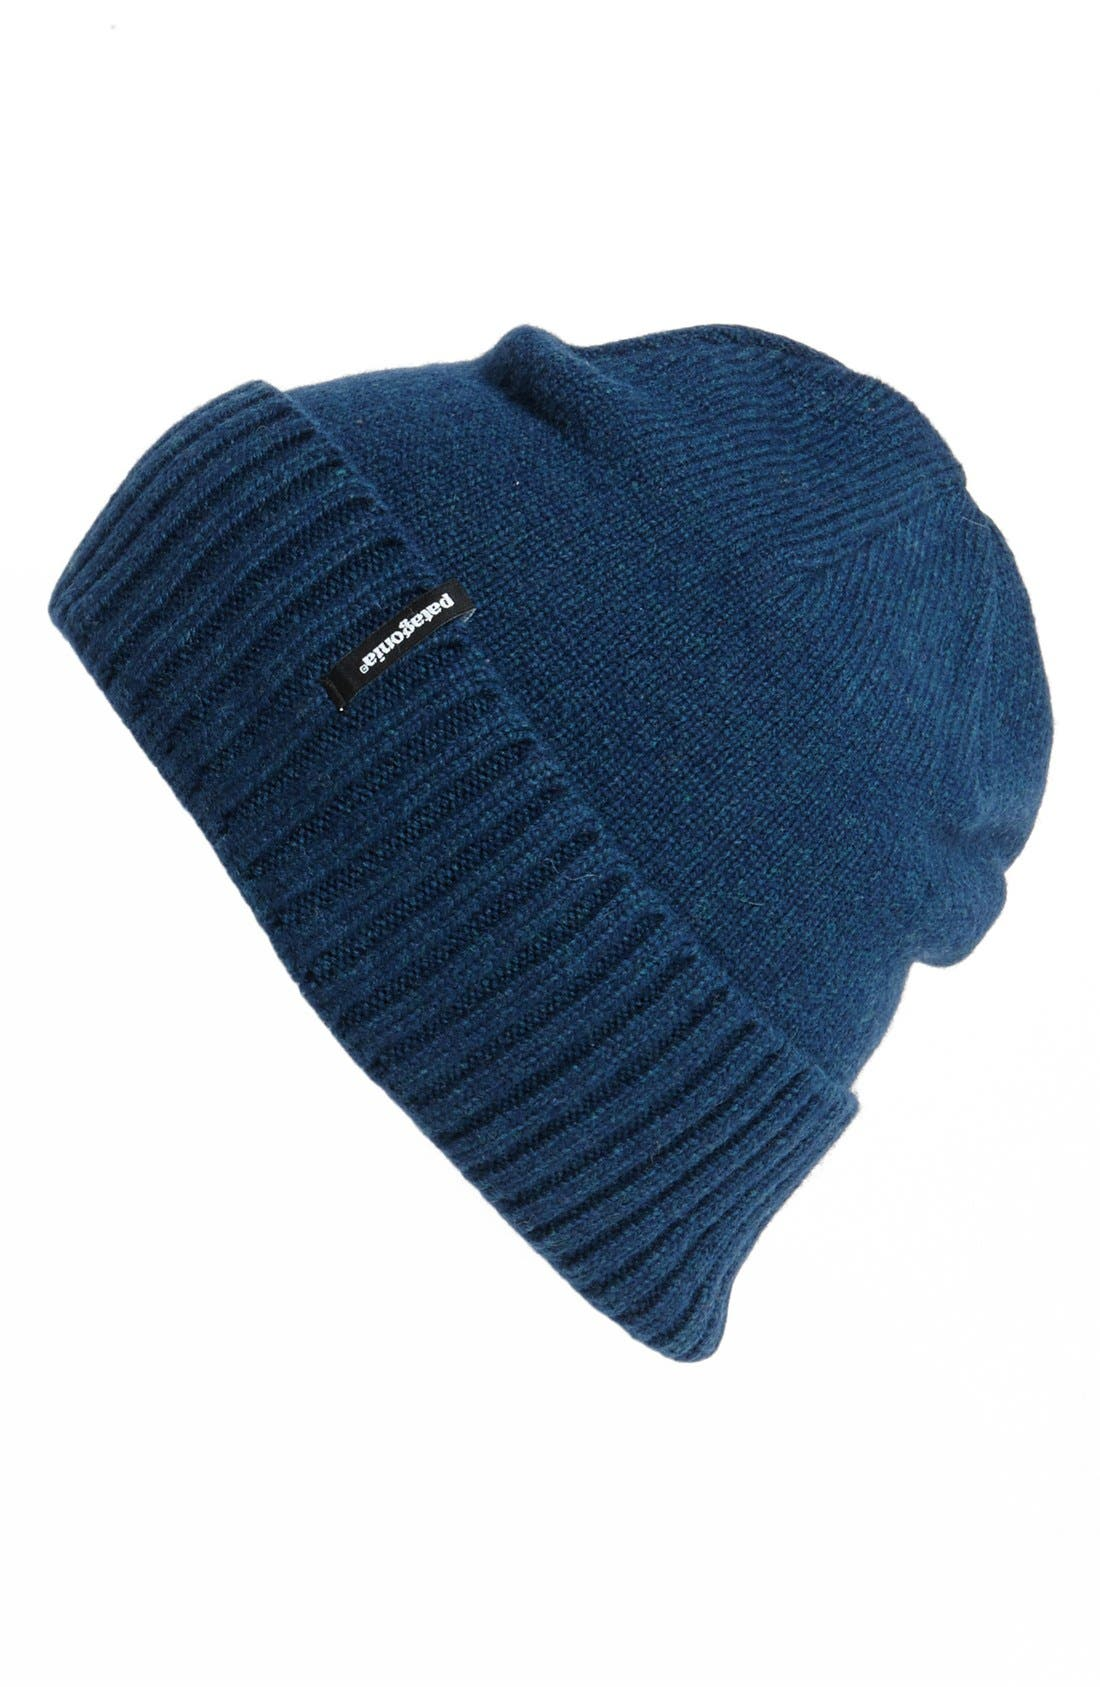 Alternate Image 1 Selected - Patagonia 'Brodeo' Merino Wool Blend Beanie